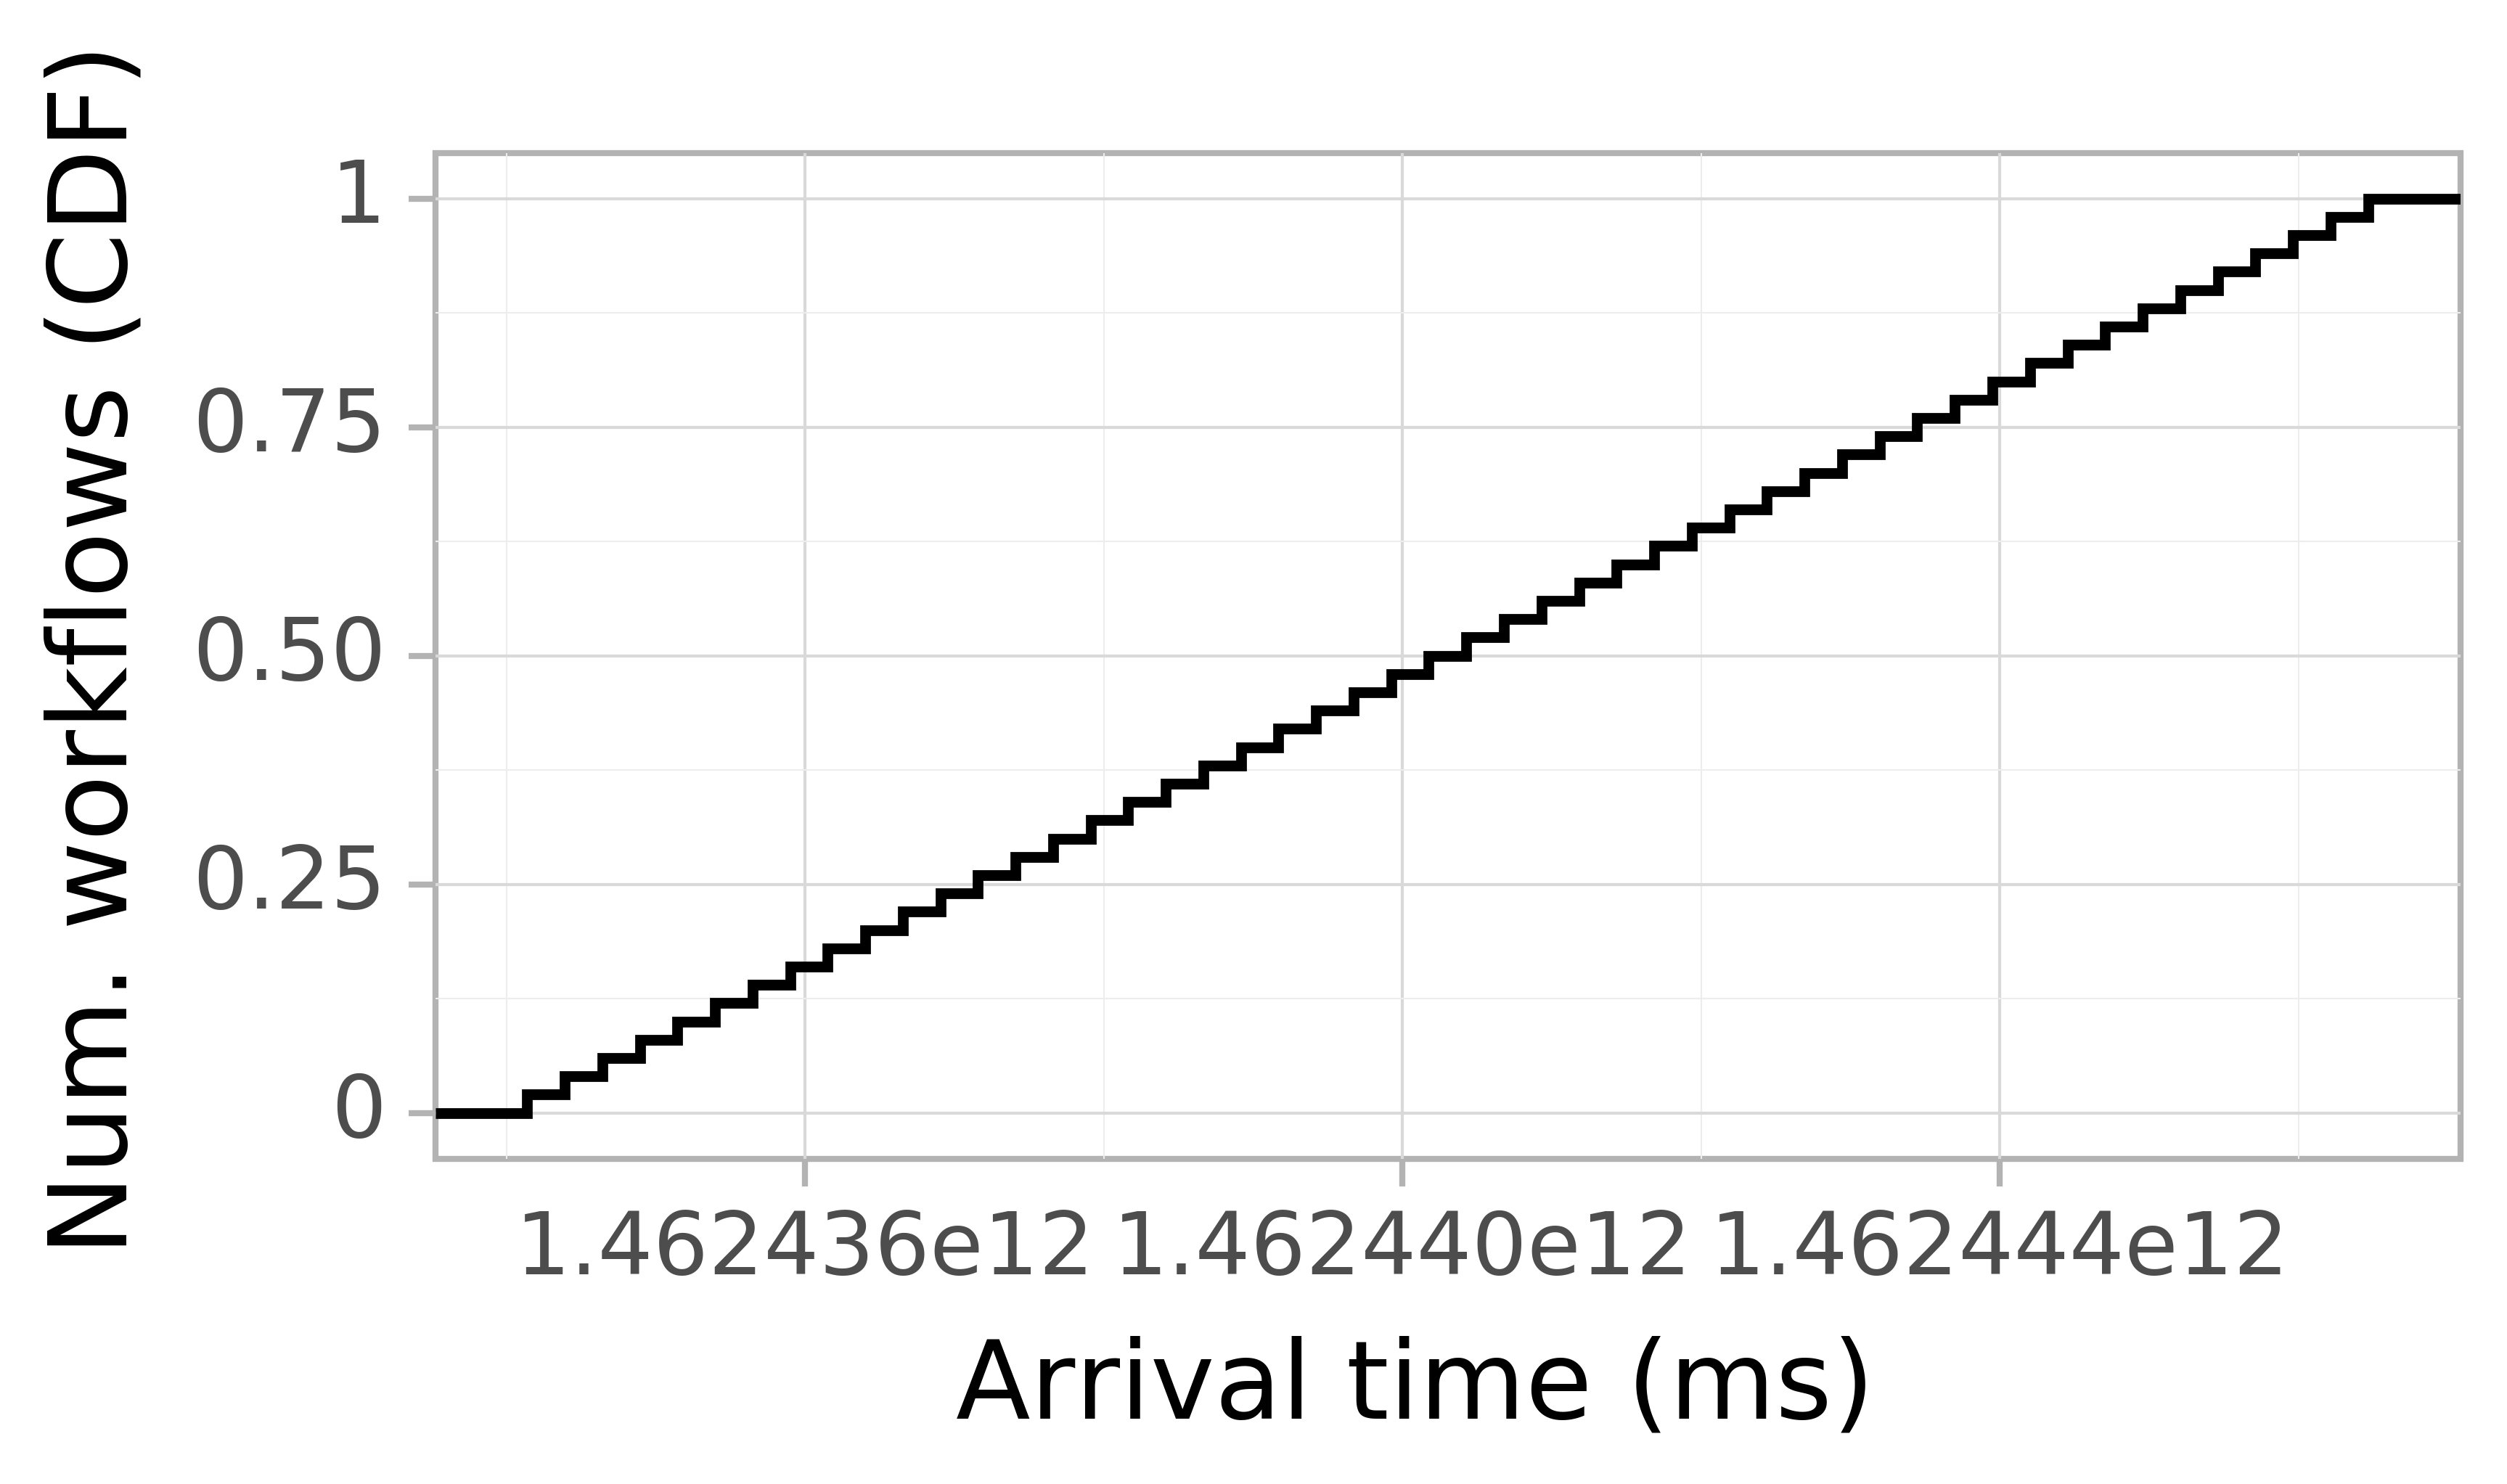 Job arrival CDF graph for the askalon-new_ee45 trace.